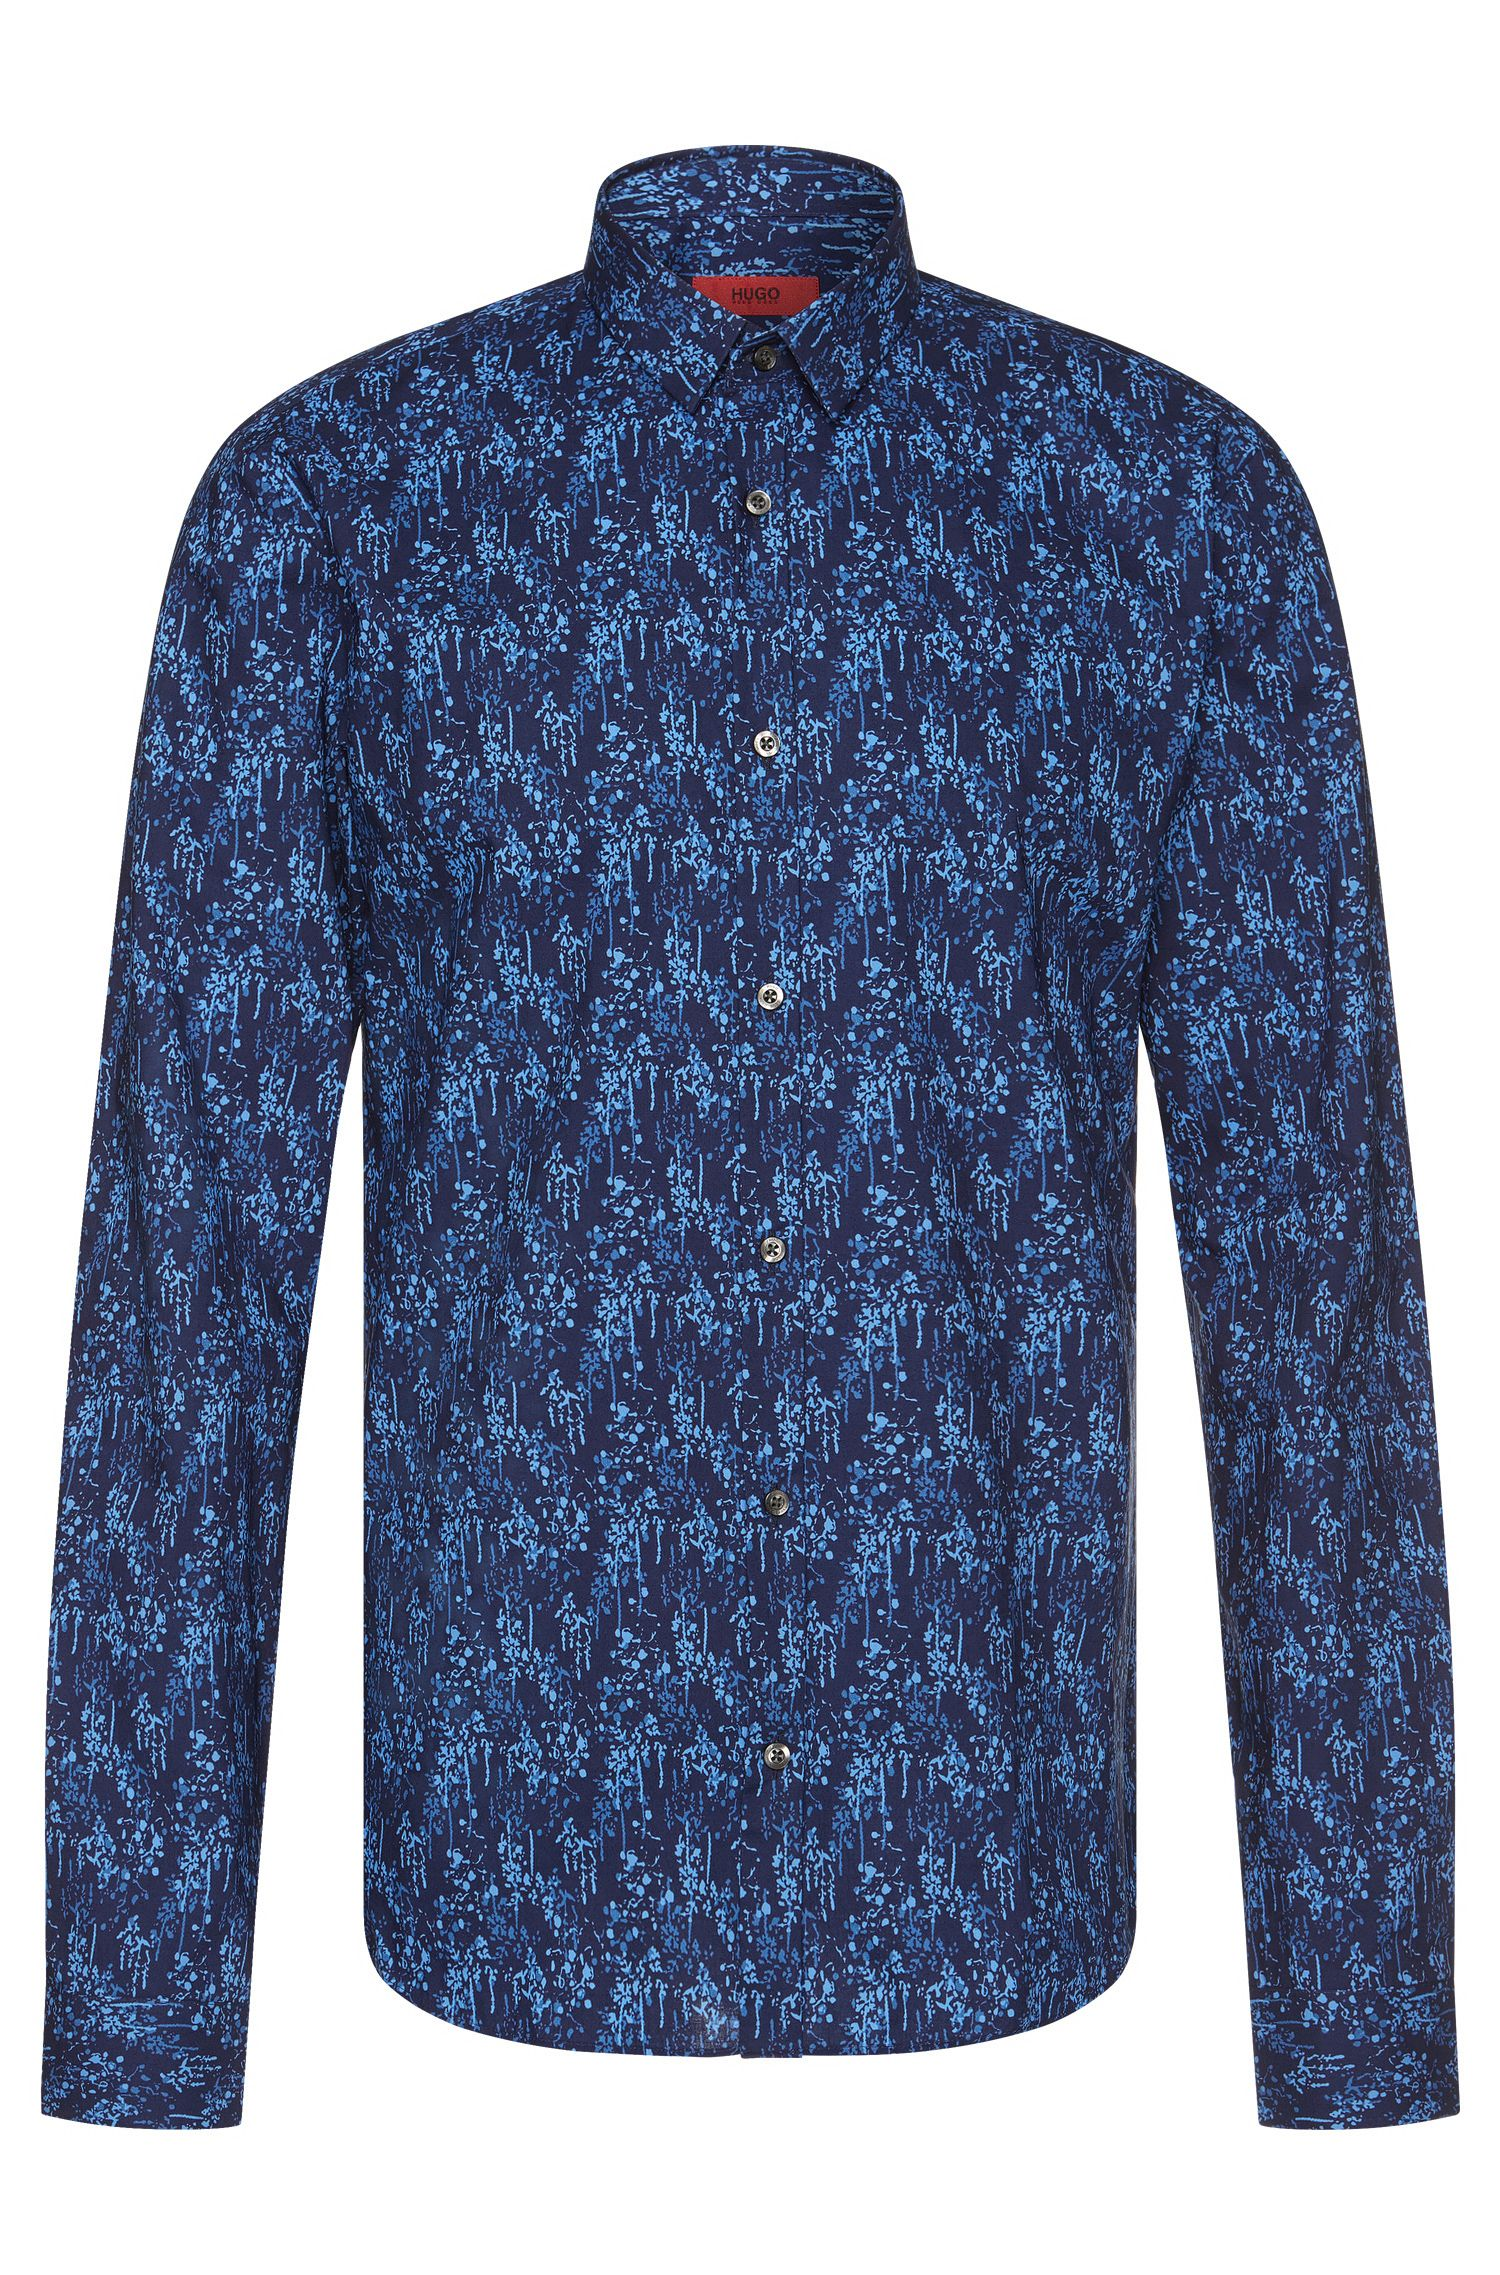 'Ero' | Slim Fit, Stretch Cotton Printed Button Down Shirt